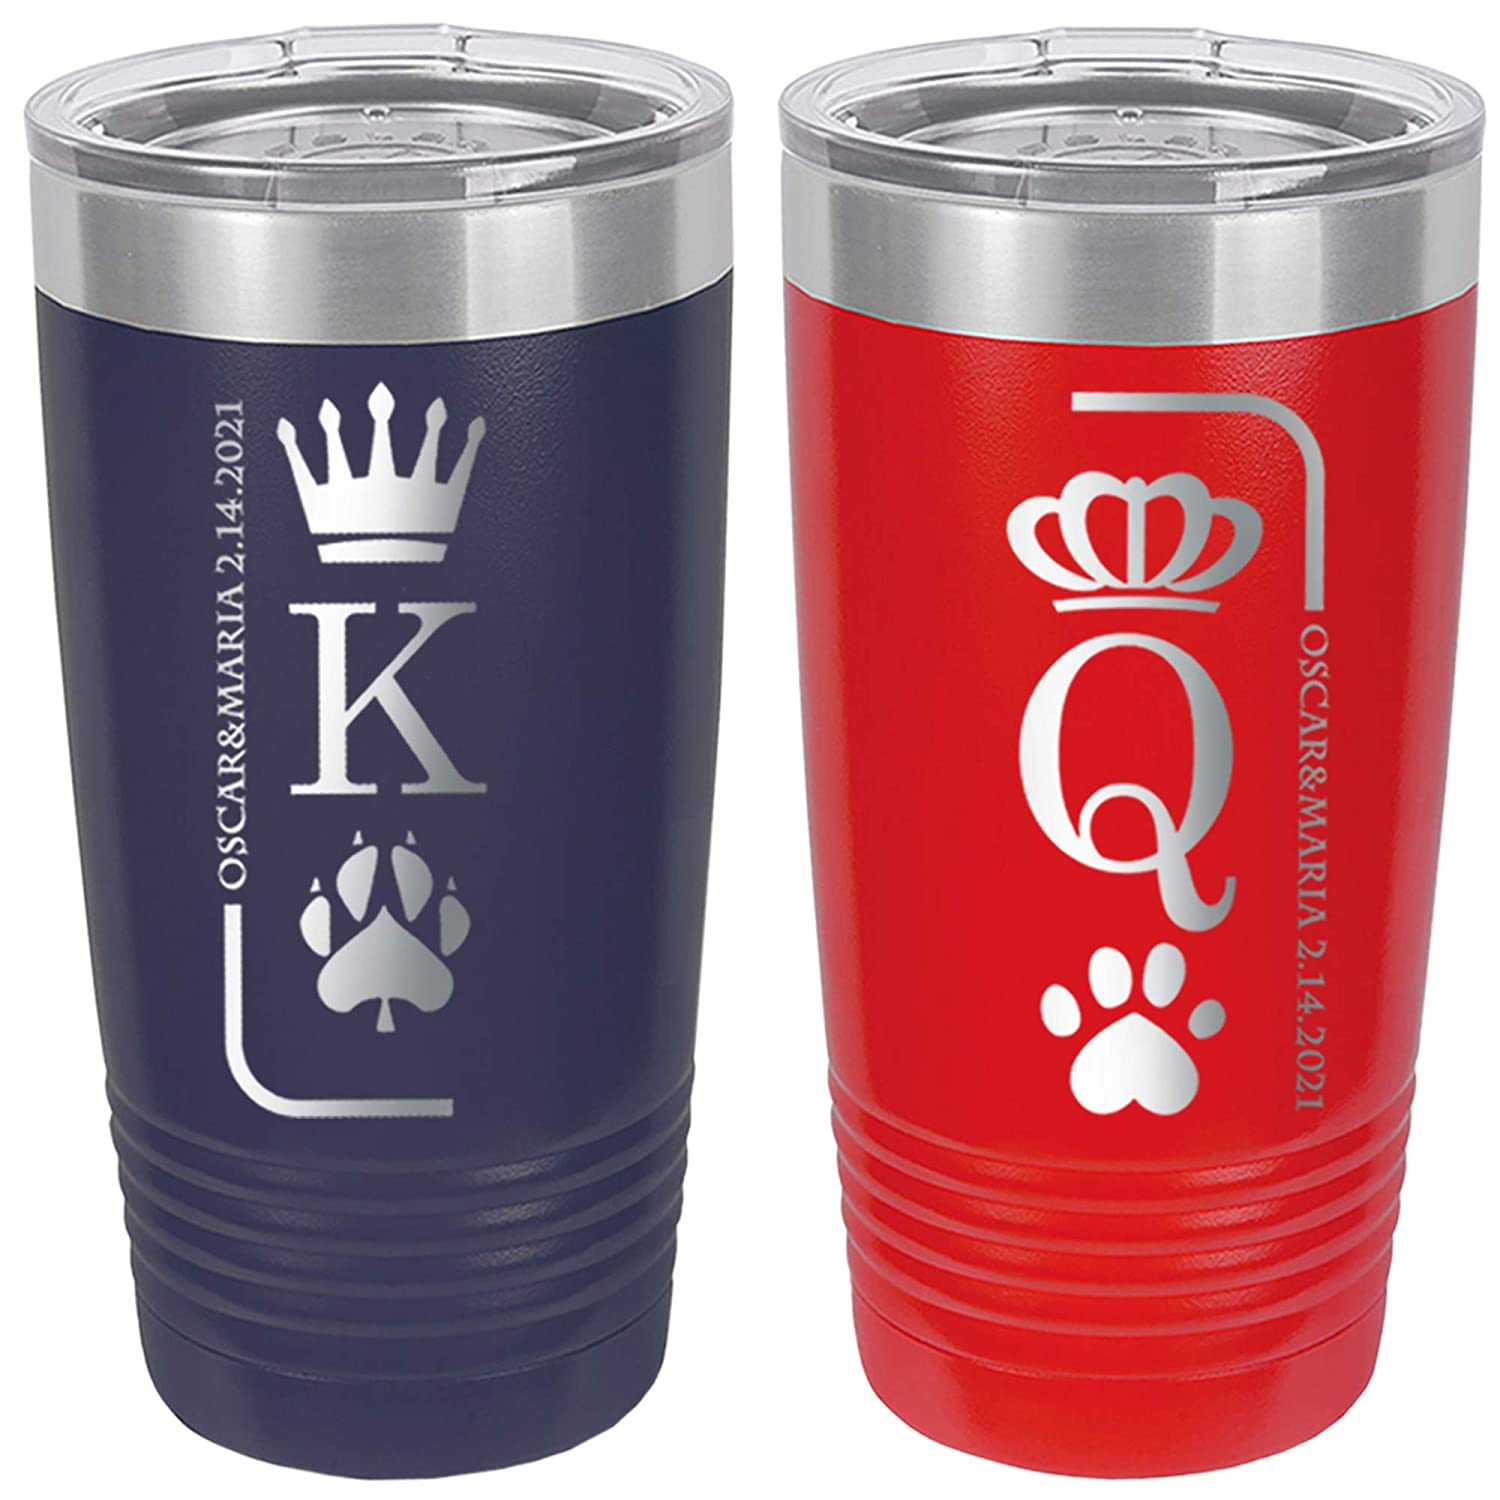 Valentine's outlet Regular store Day Couples Matching Gift Tumblers Coffee Insulated